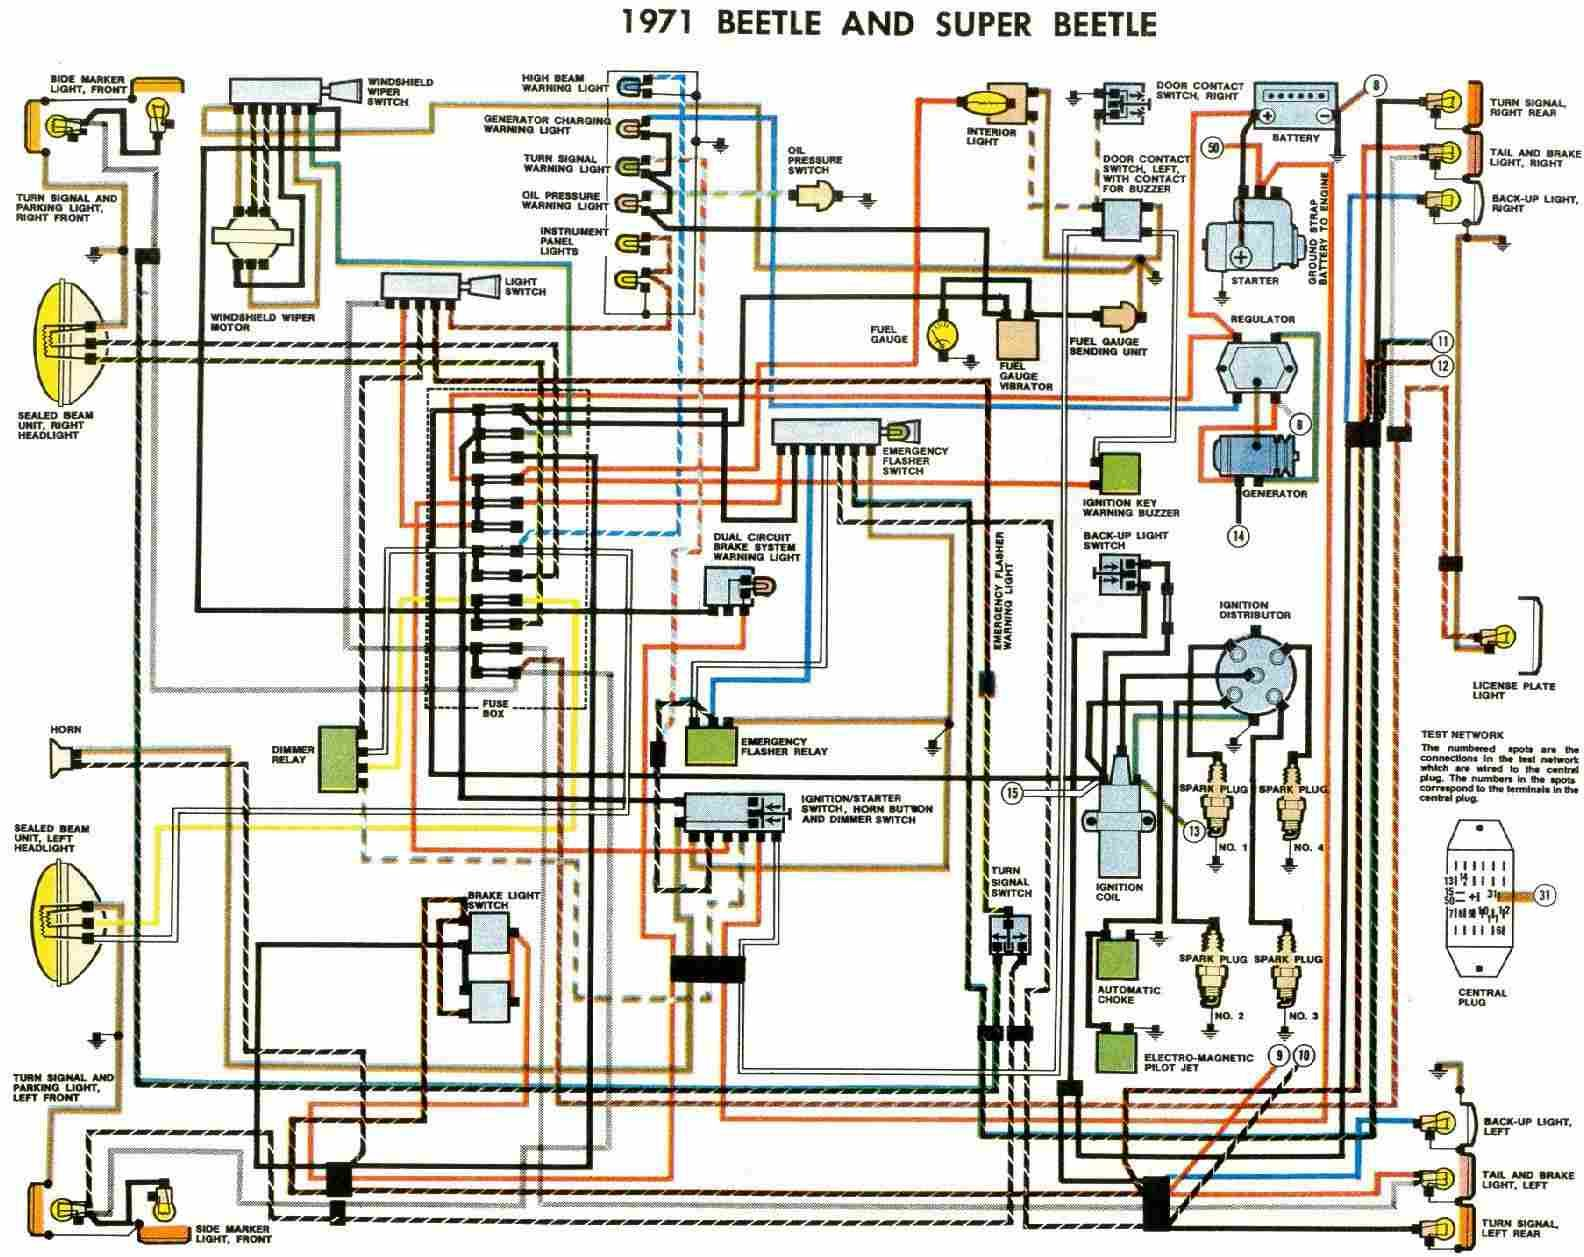 70a77cea80ed389fc28e4bd56fae267b simple car wiring diagram simple automotive wiring diagram \u2022 free free automotive electrical wiring diagrams at honlapkeszites.co